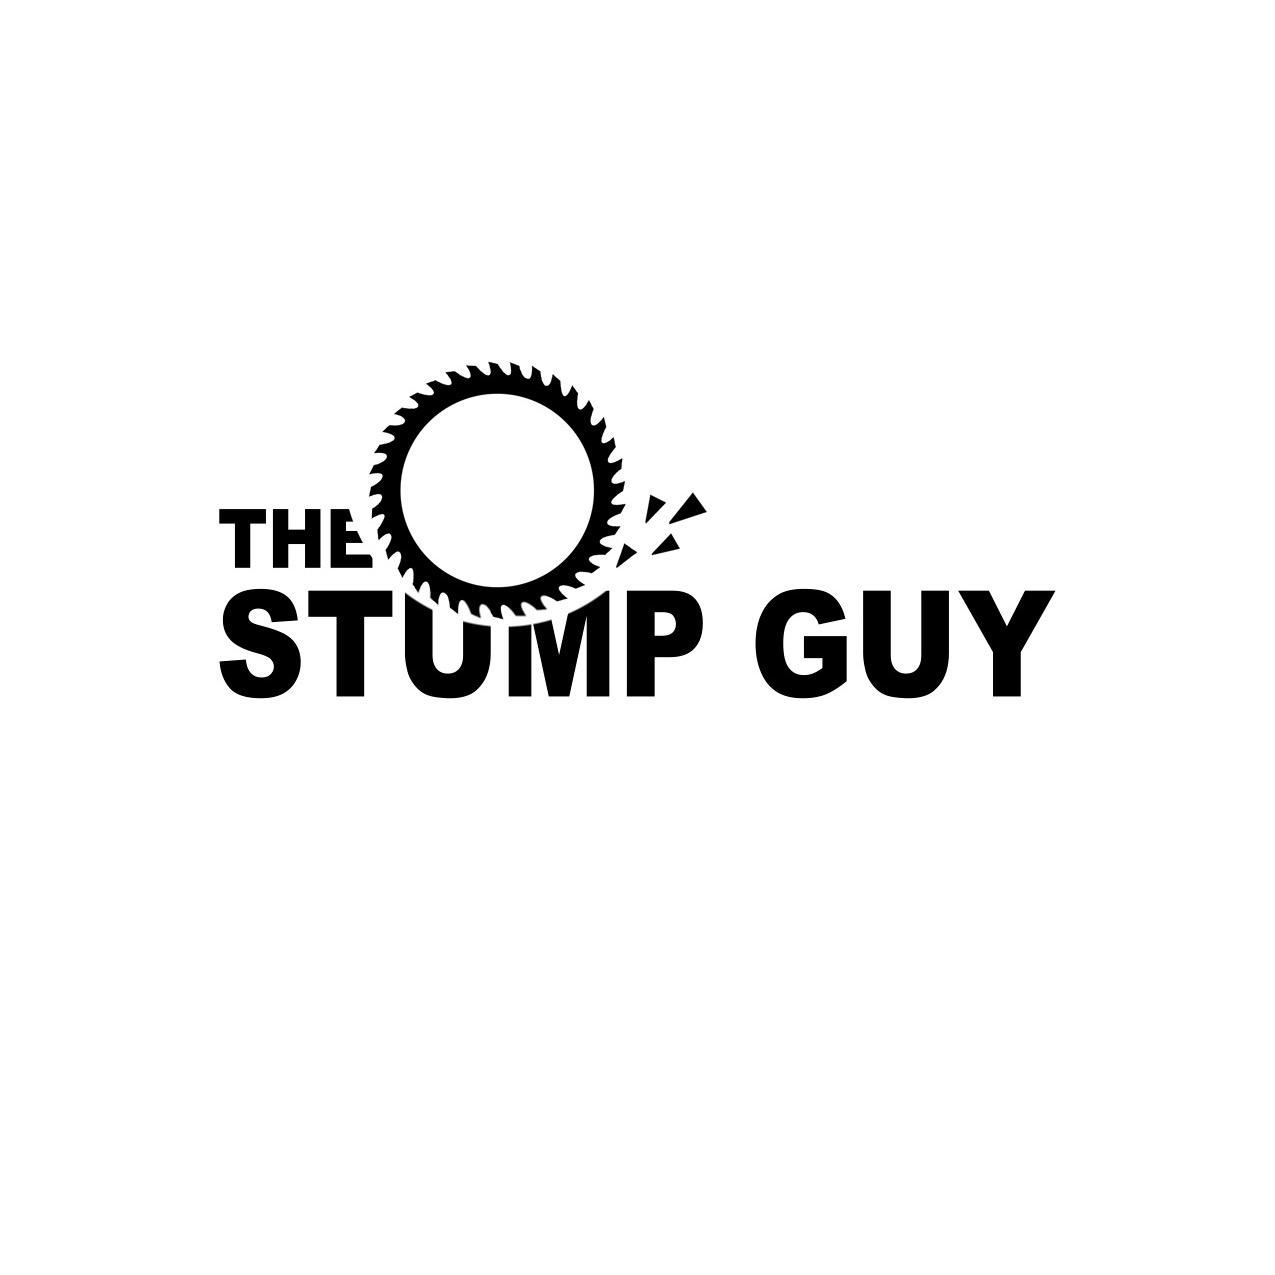 The Stump Guy